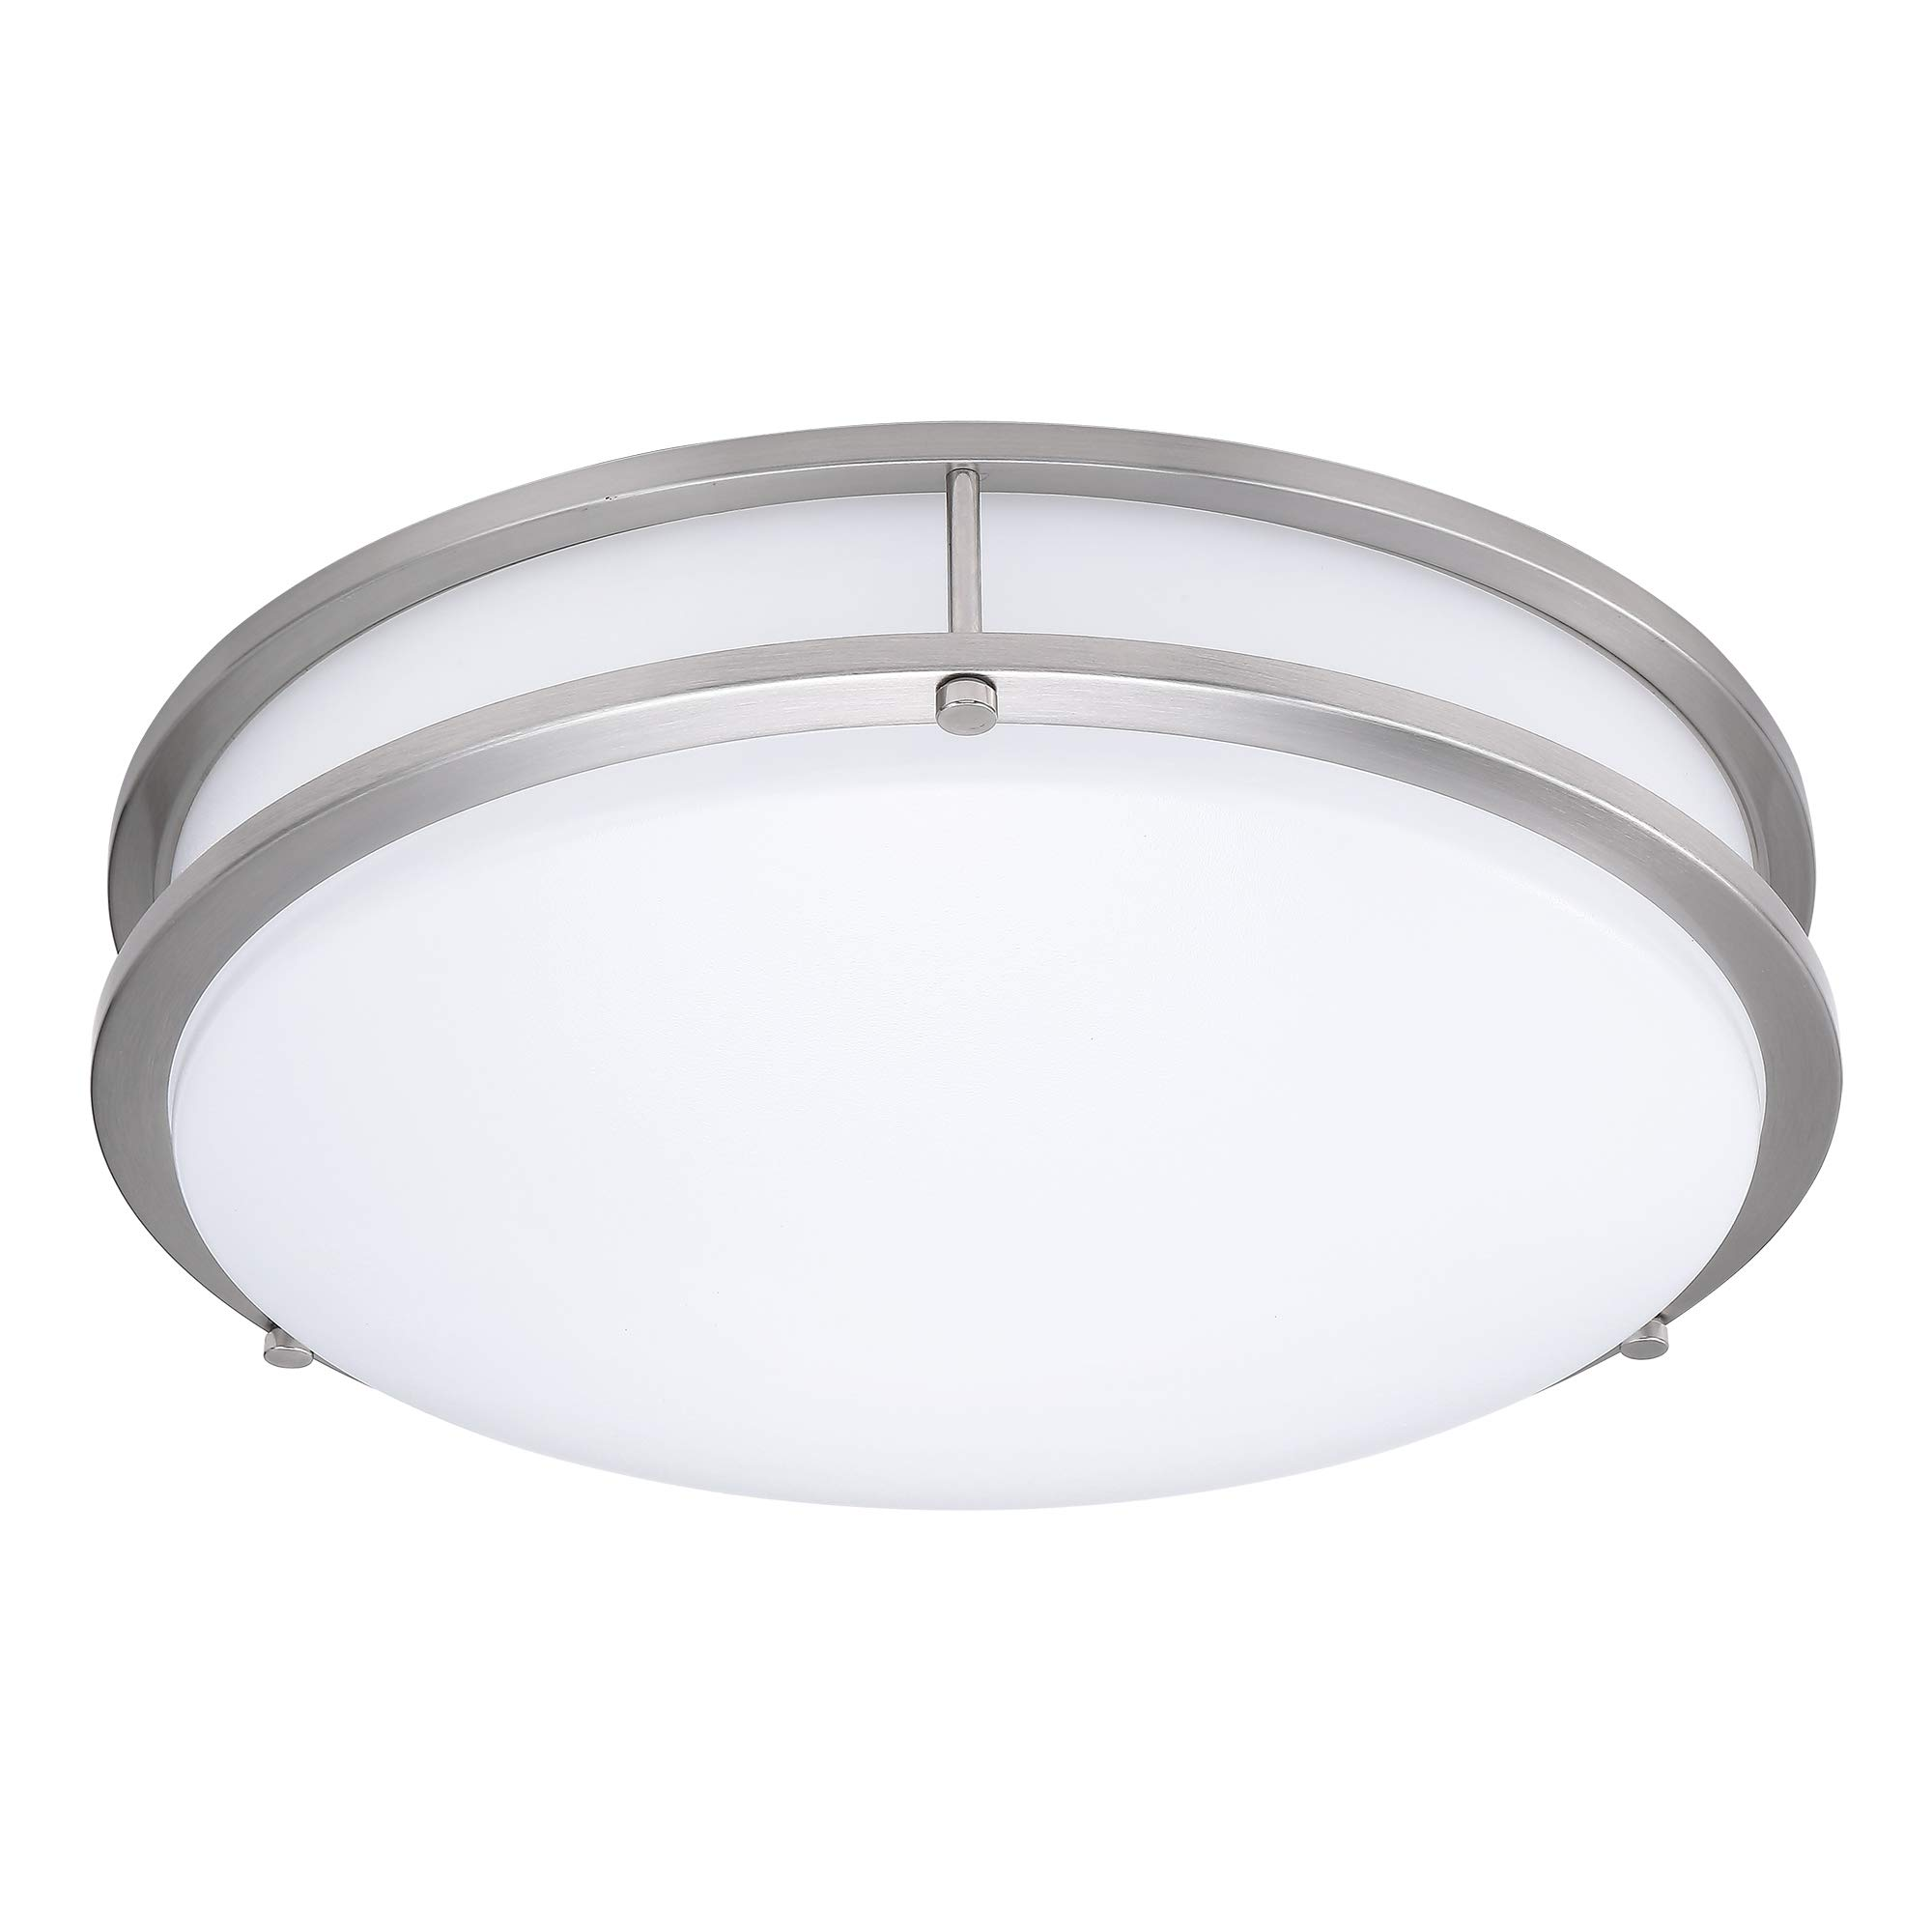 15-Inch Double Ring Dimmable LED Flush Mount Ceiling Light, 22W (100W Equivalent), 1800lm, 4000K Natural White, Brushed Nickel Finish with Plastic Shade, ETL Listed, Commercial or Residential